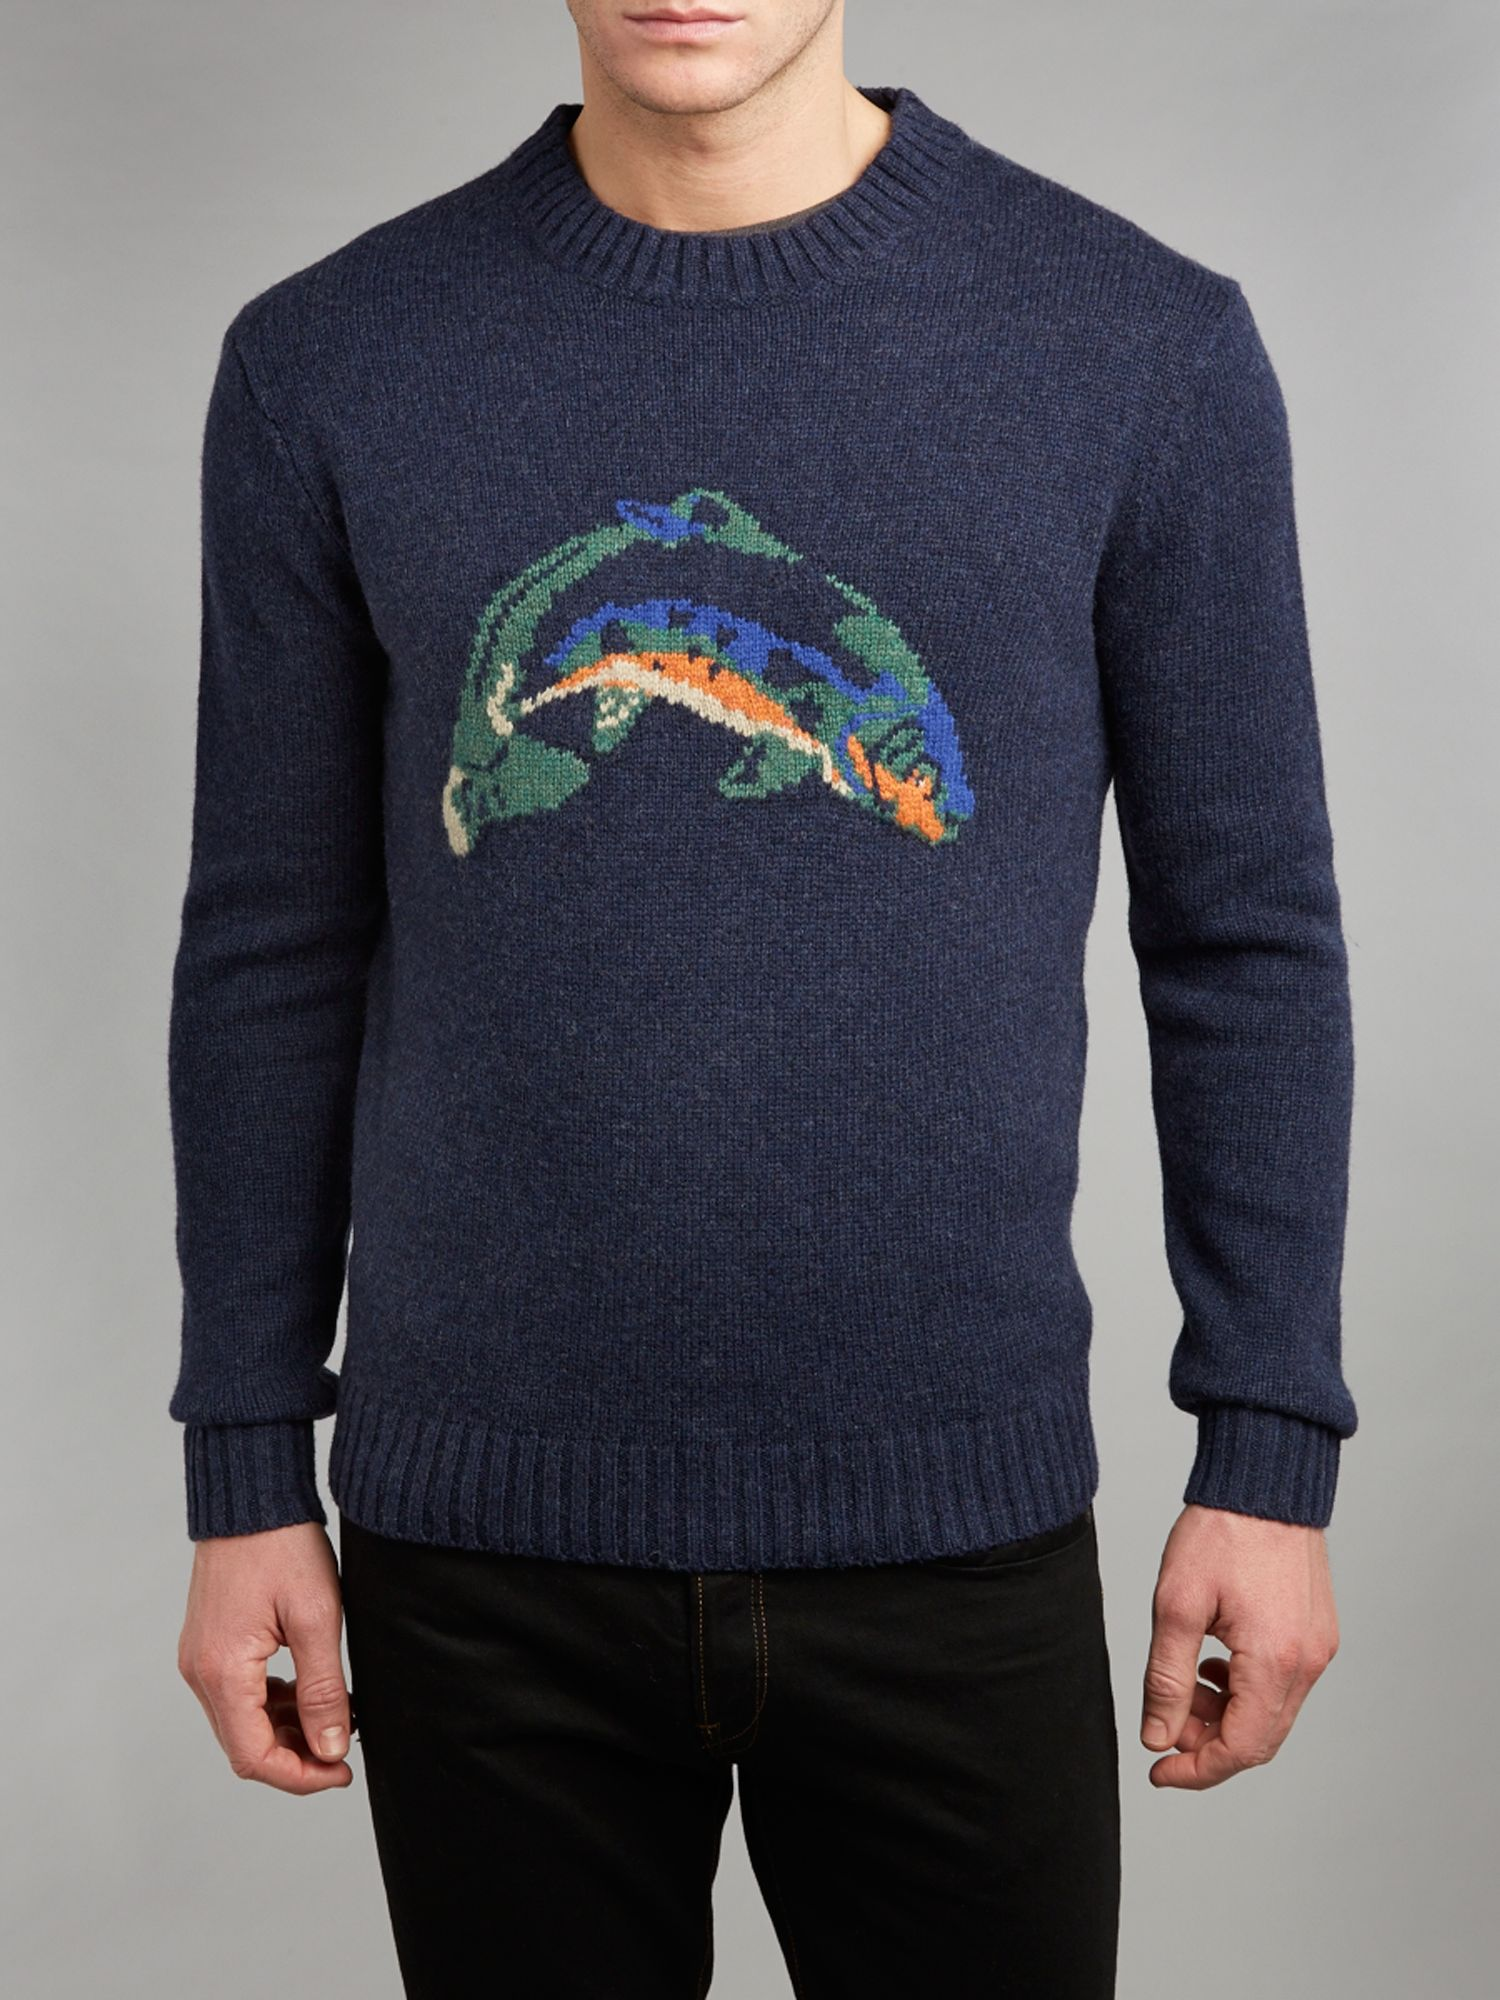 Sedgley fish knit jumper